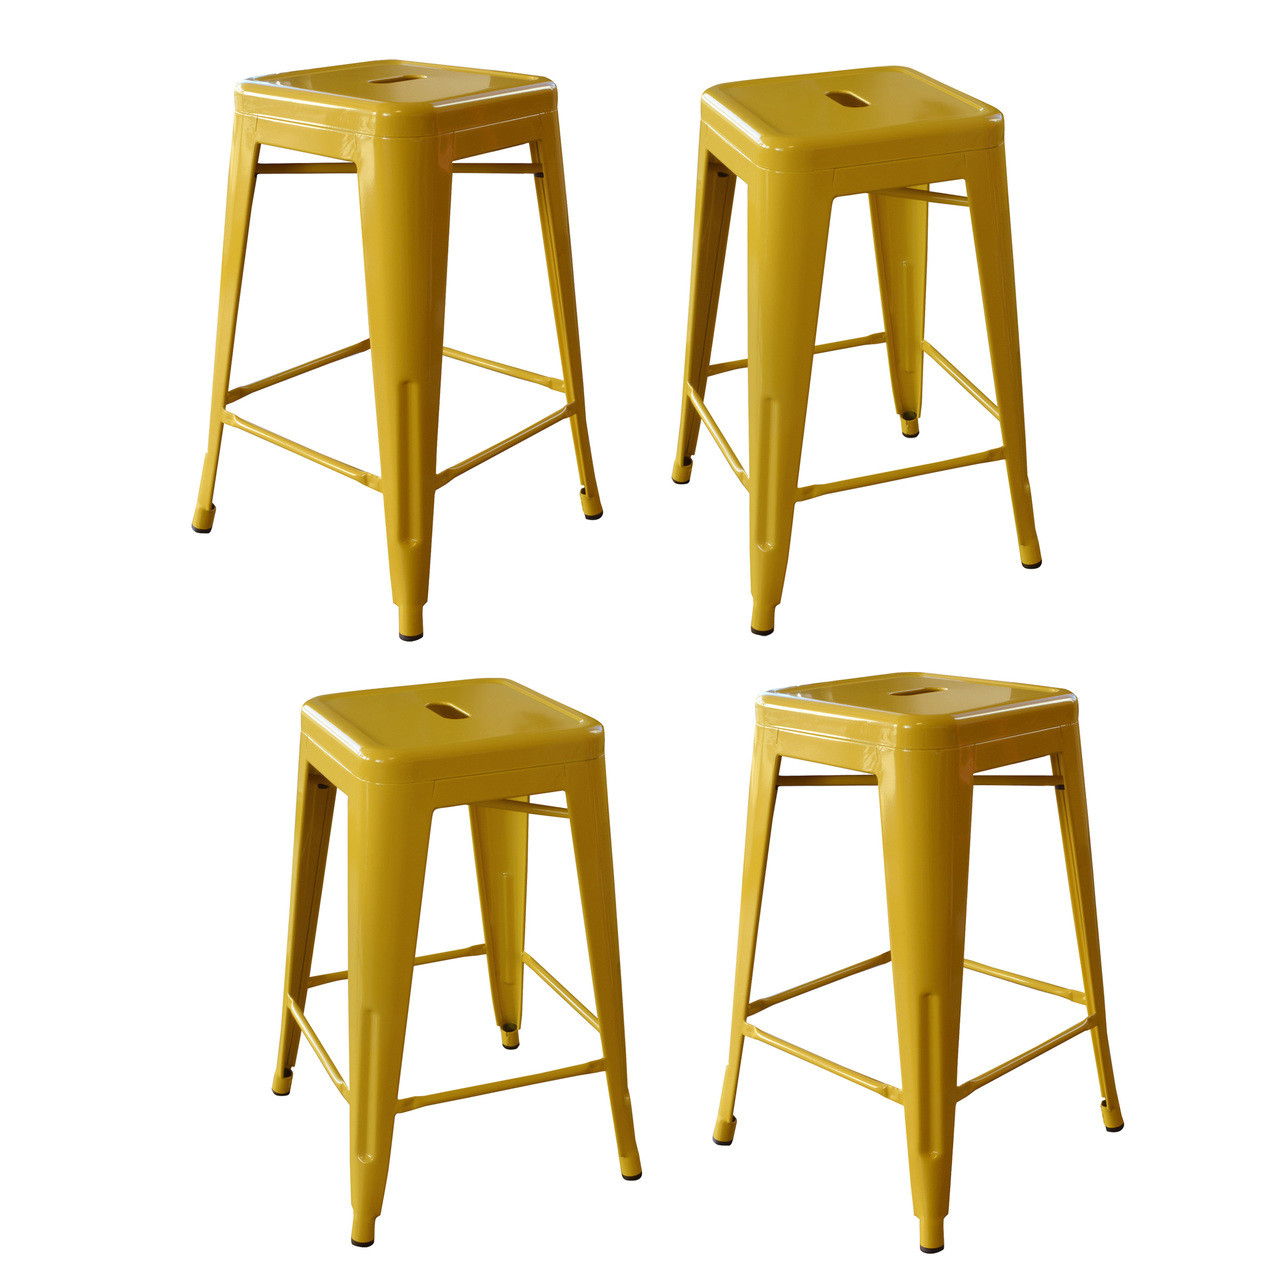 Amerihome Loft Gold 24 Inch Metal Bar Stool 4 Piece Jb Tool Sales